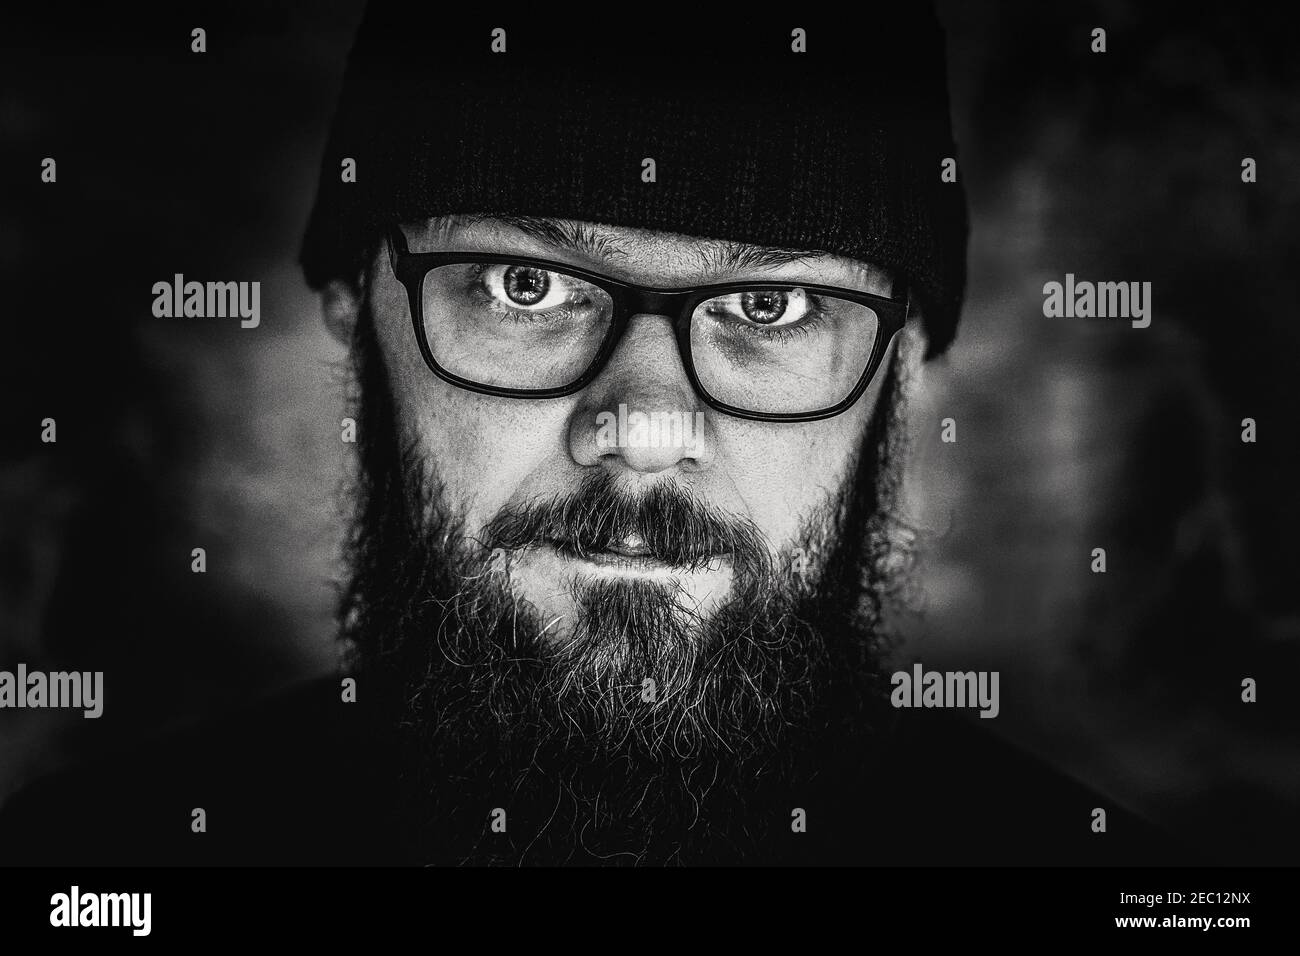 black and white portrait of a man with a beard and glasses, close-up, studio Stock Photo